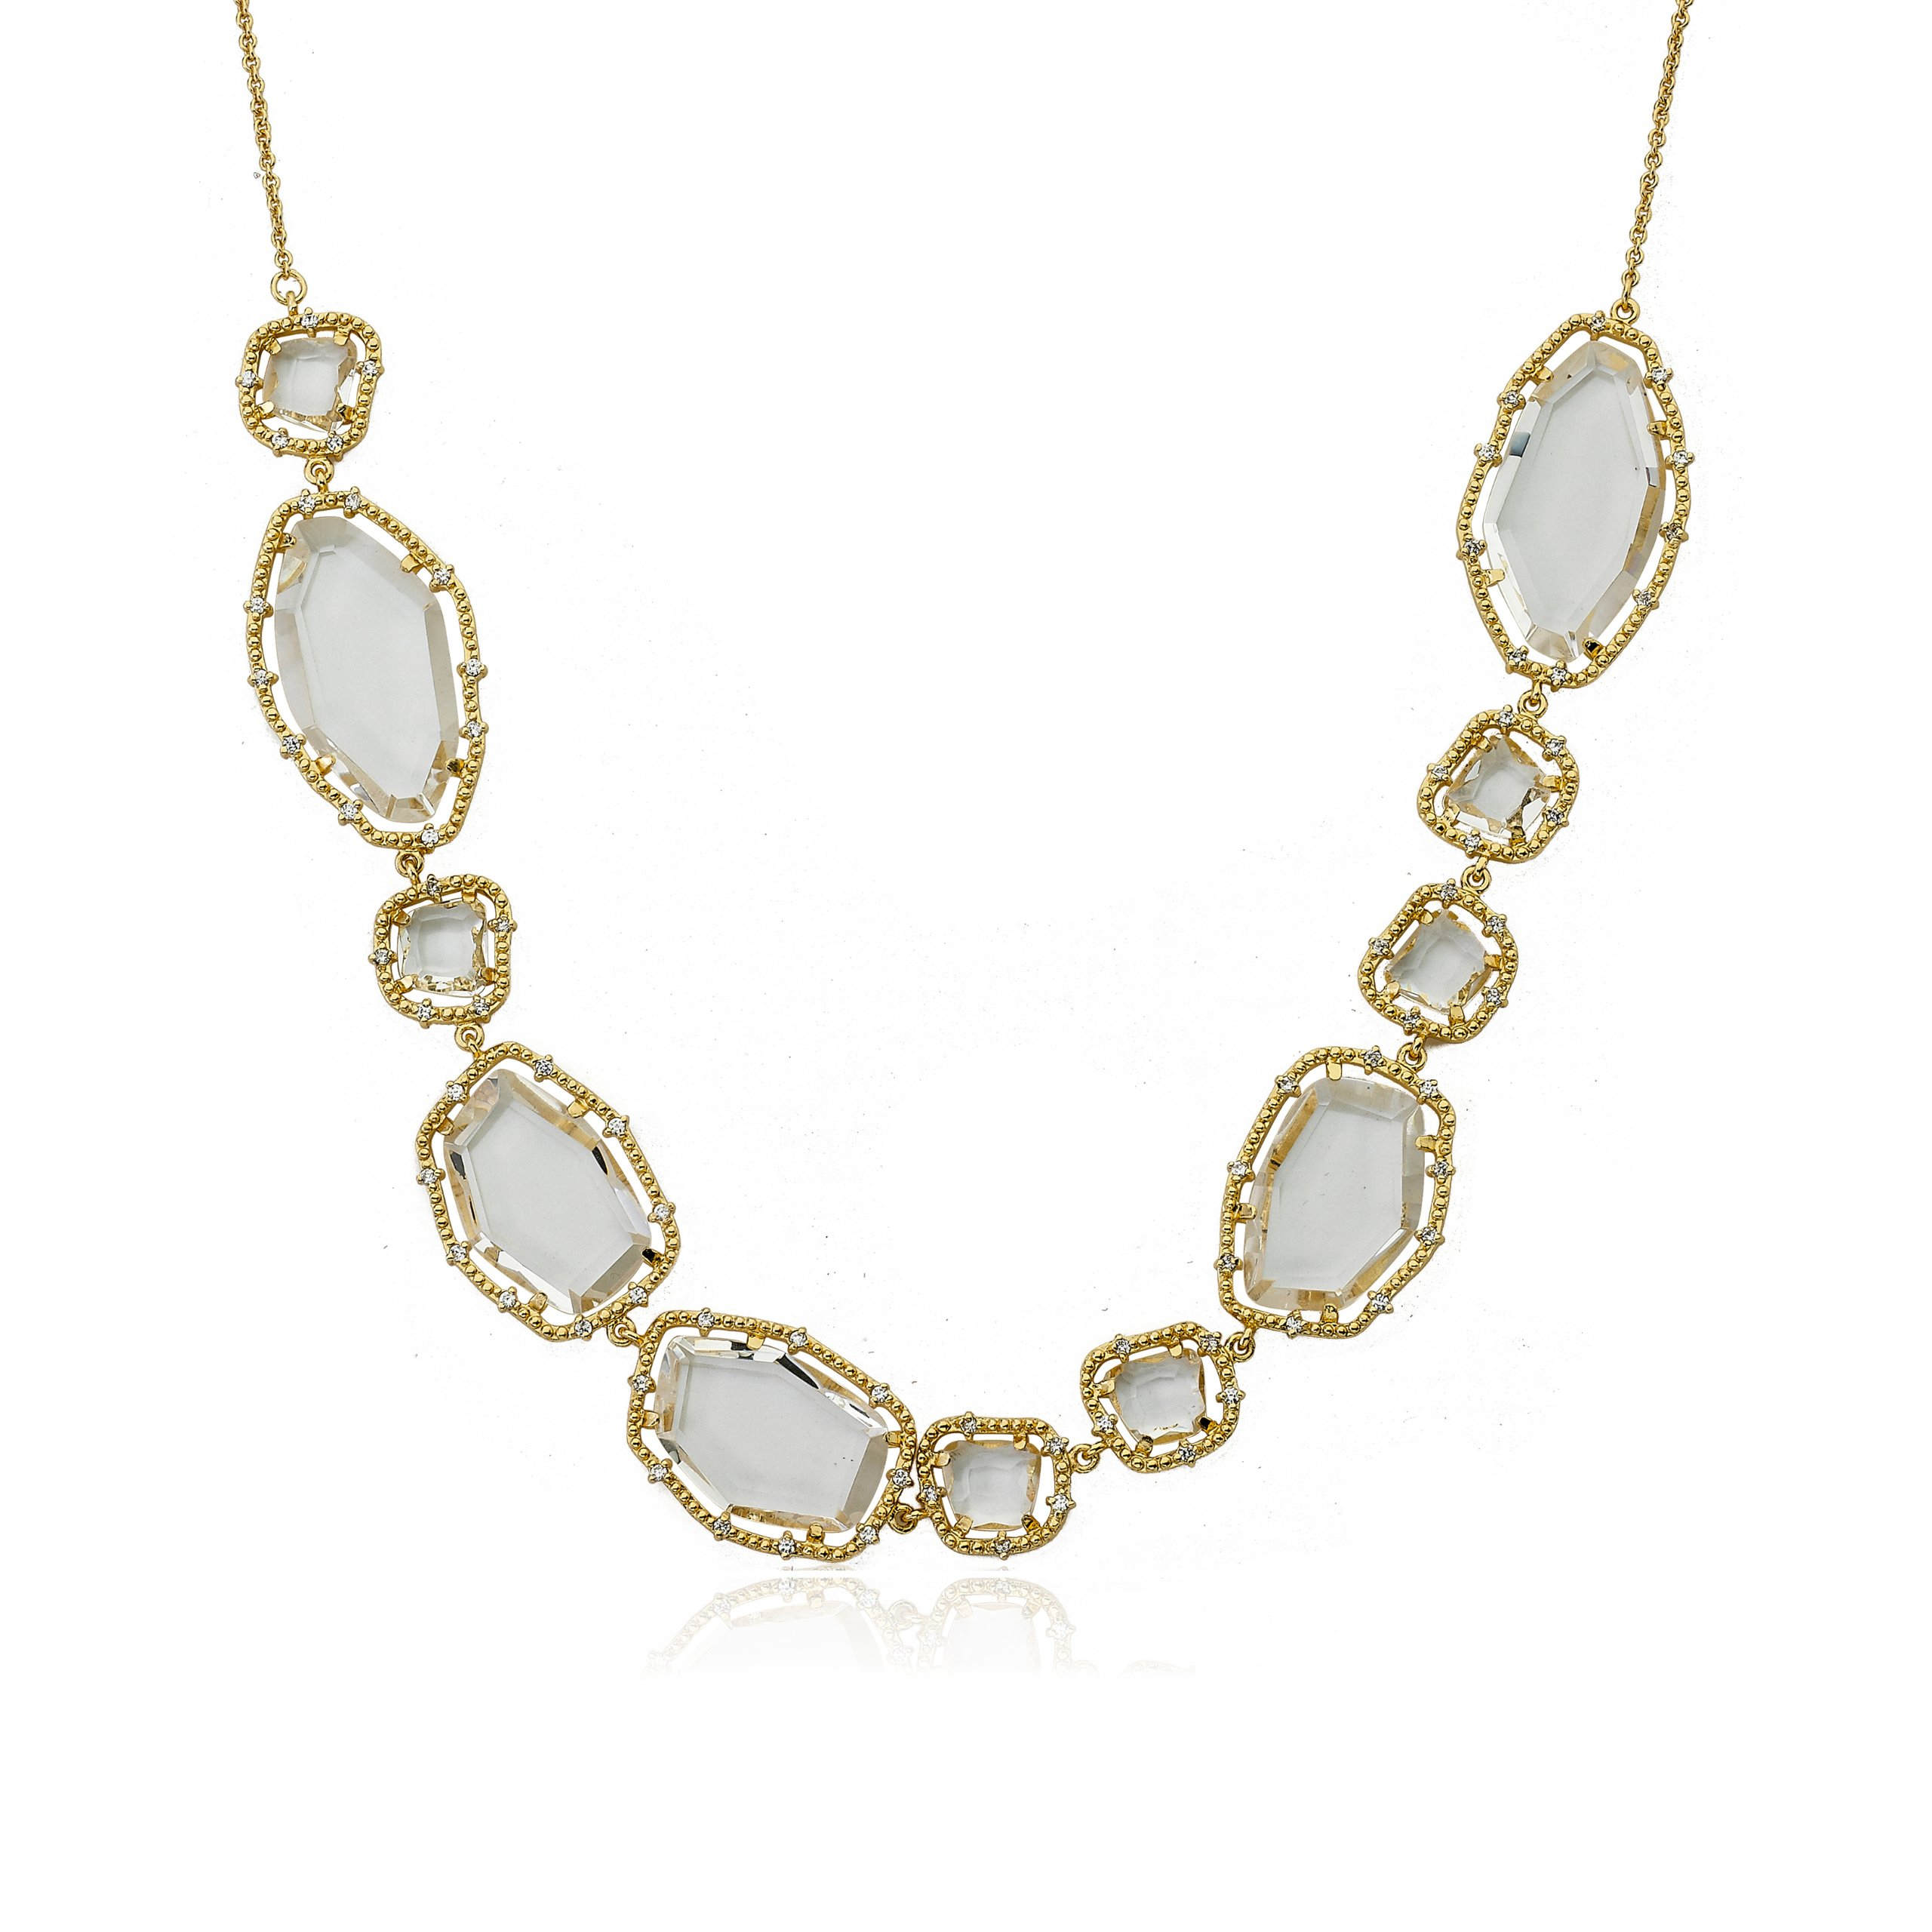 Riccova Sliced Glass 14k Gold-Plated CZ (Prong Setting) Clear Sliced Stones Detailed Necklace 18''/2'' by Riccova